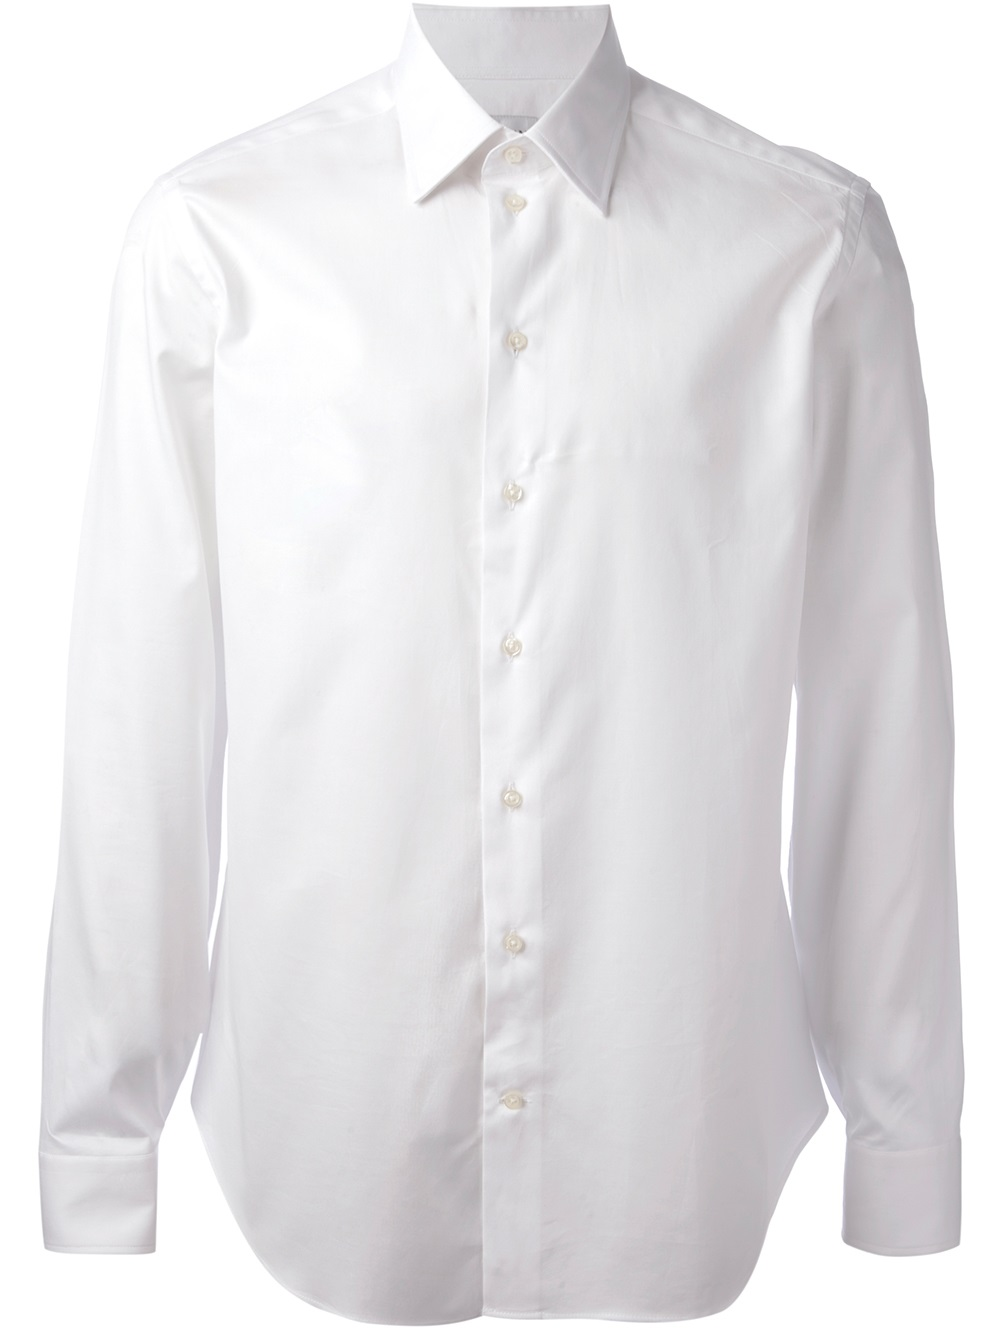 collared white shirt artee shirt